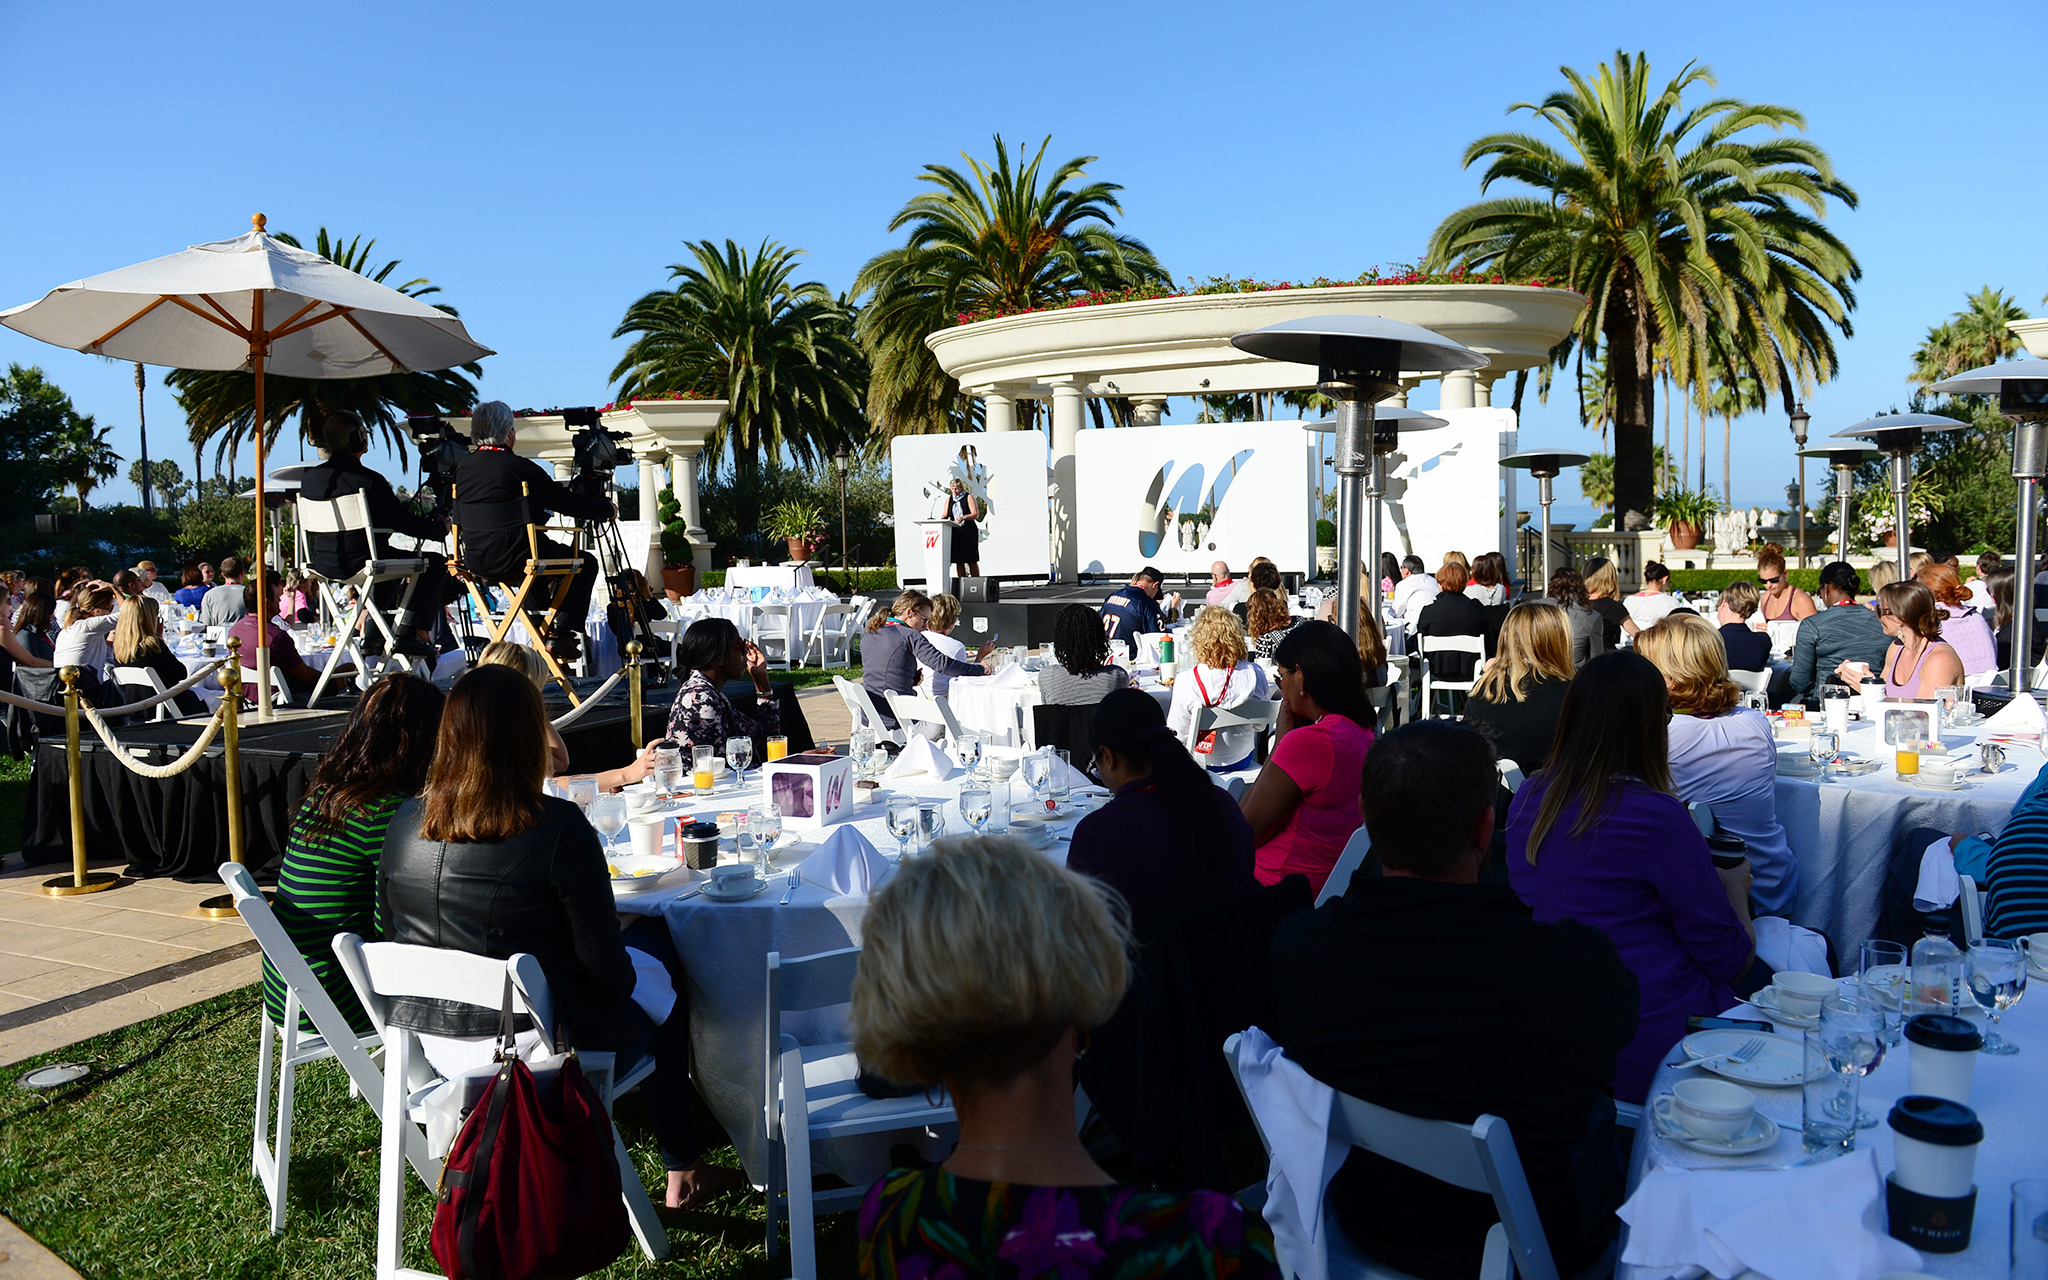 The sun was out again for Day 3 of the espnW Women  Sports Summit.